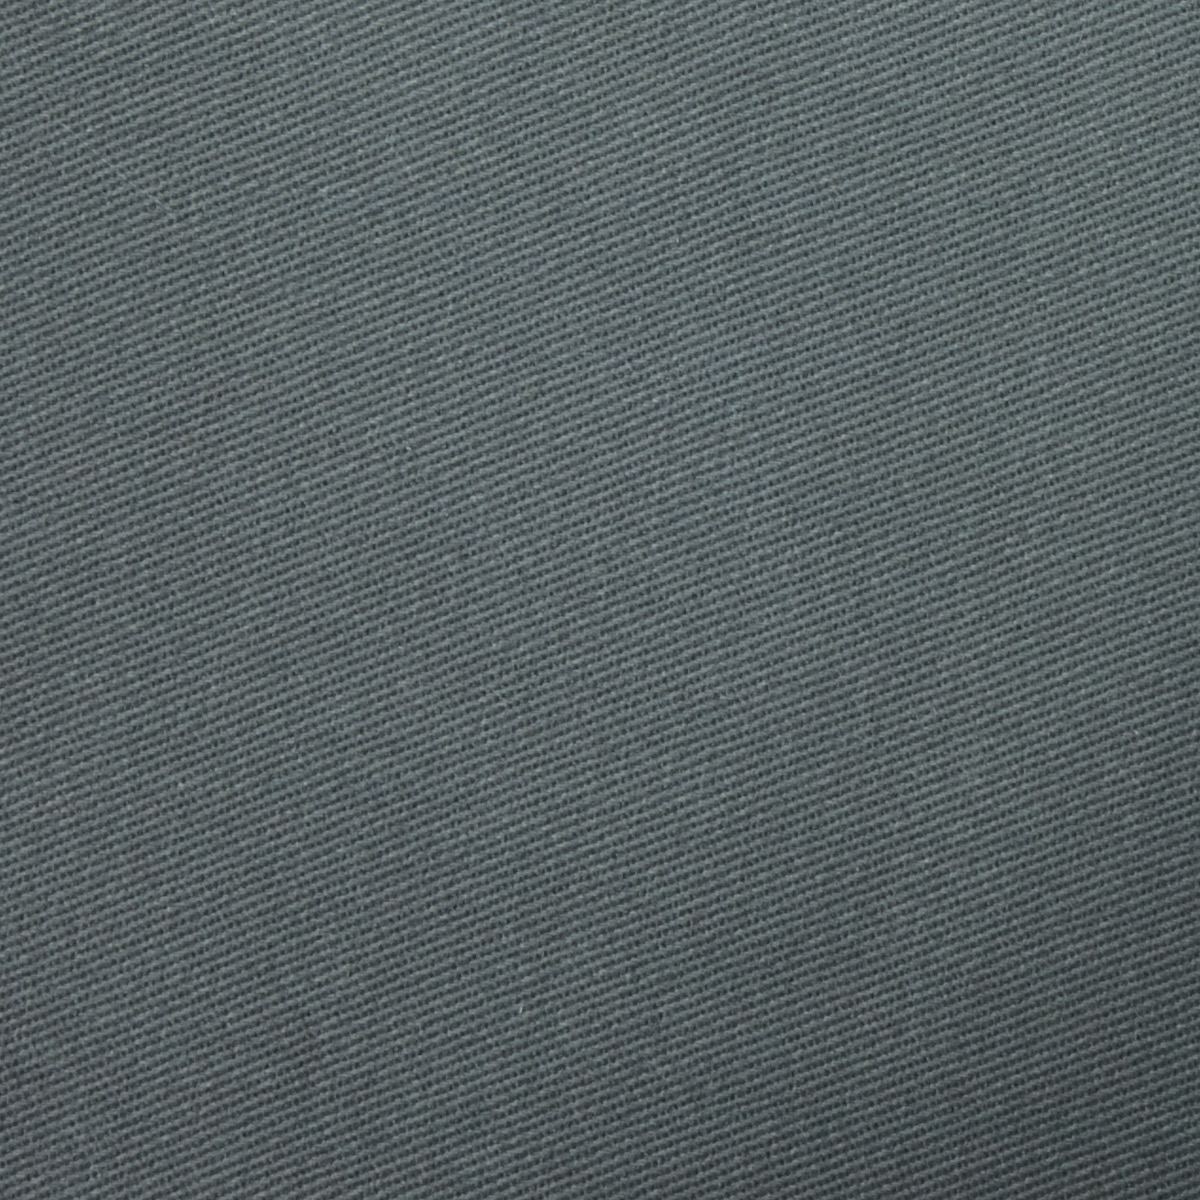 Buy tailor made shirts online - Lightweight Cotton Leisure Cloth - Dark Grey with lining